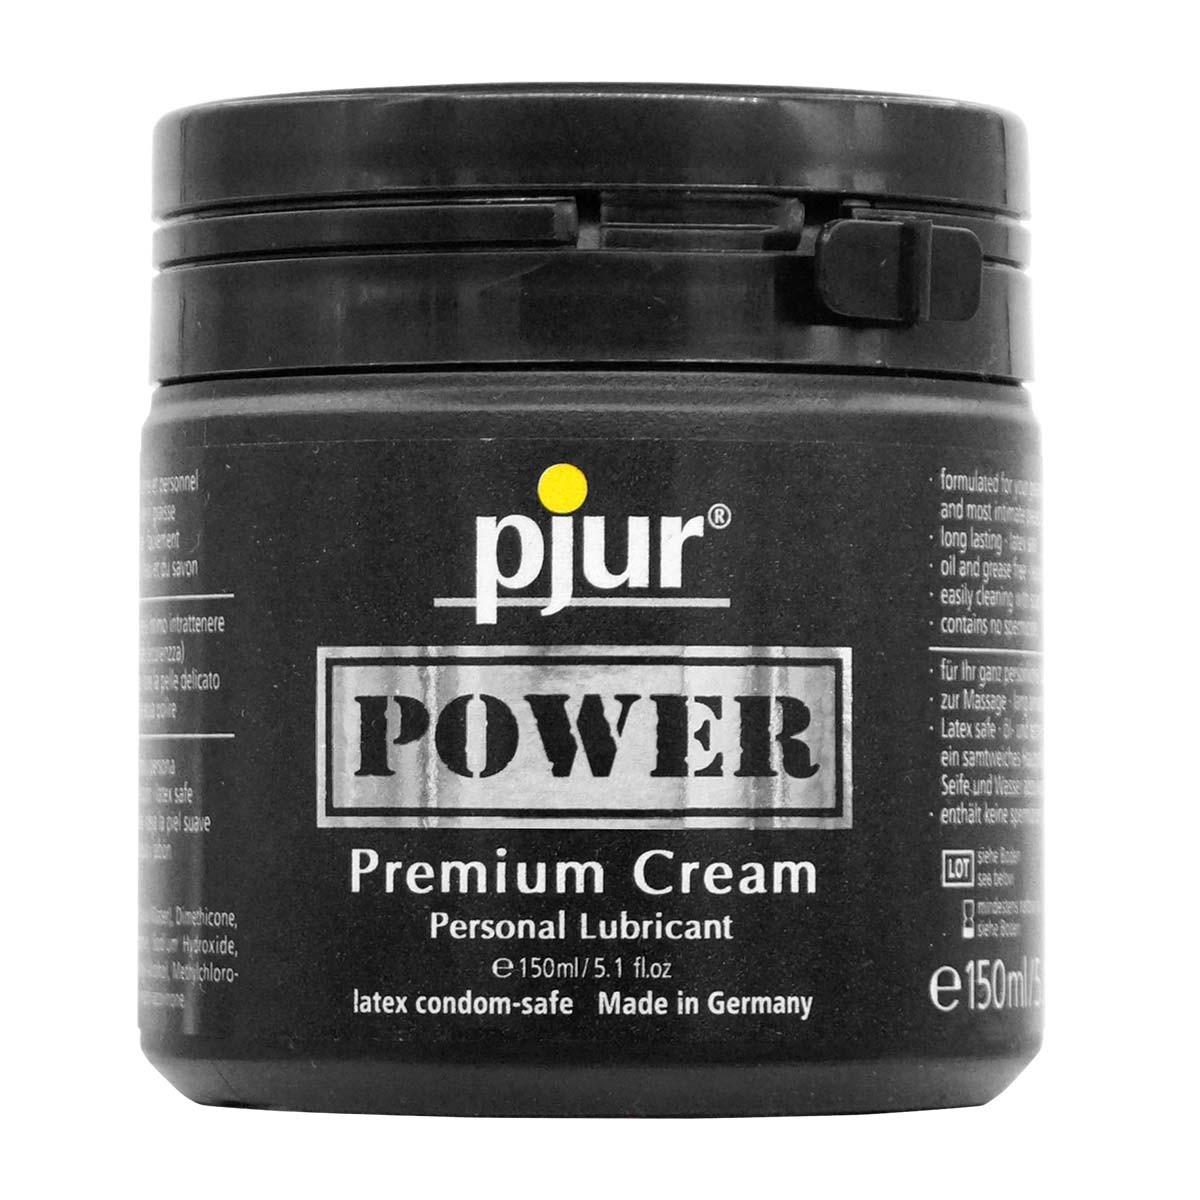 pjur POWER 150ml Premium Cream